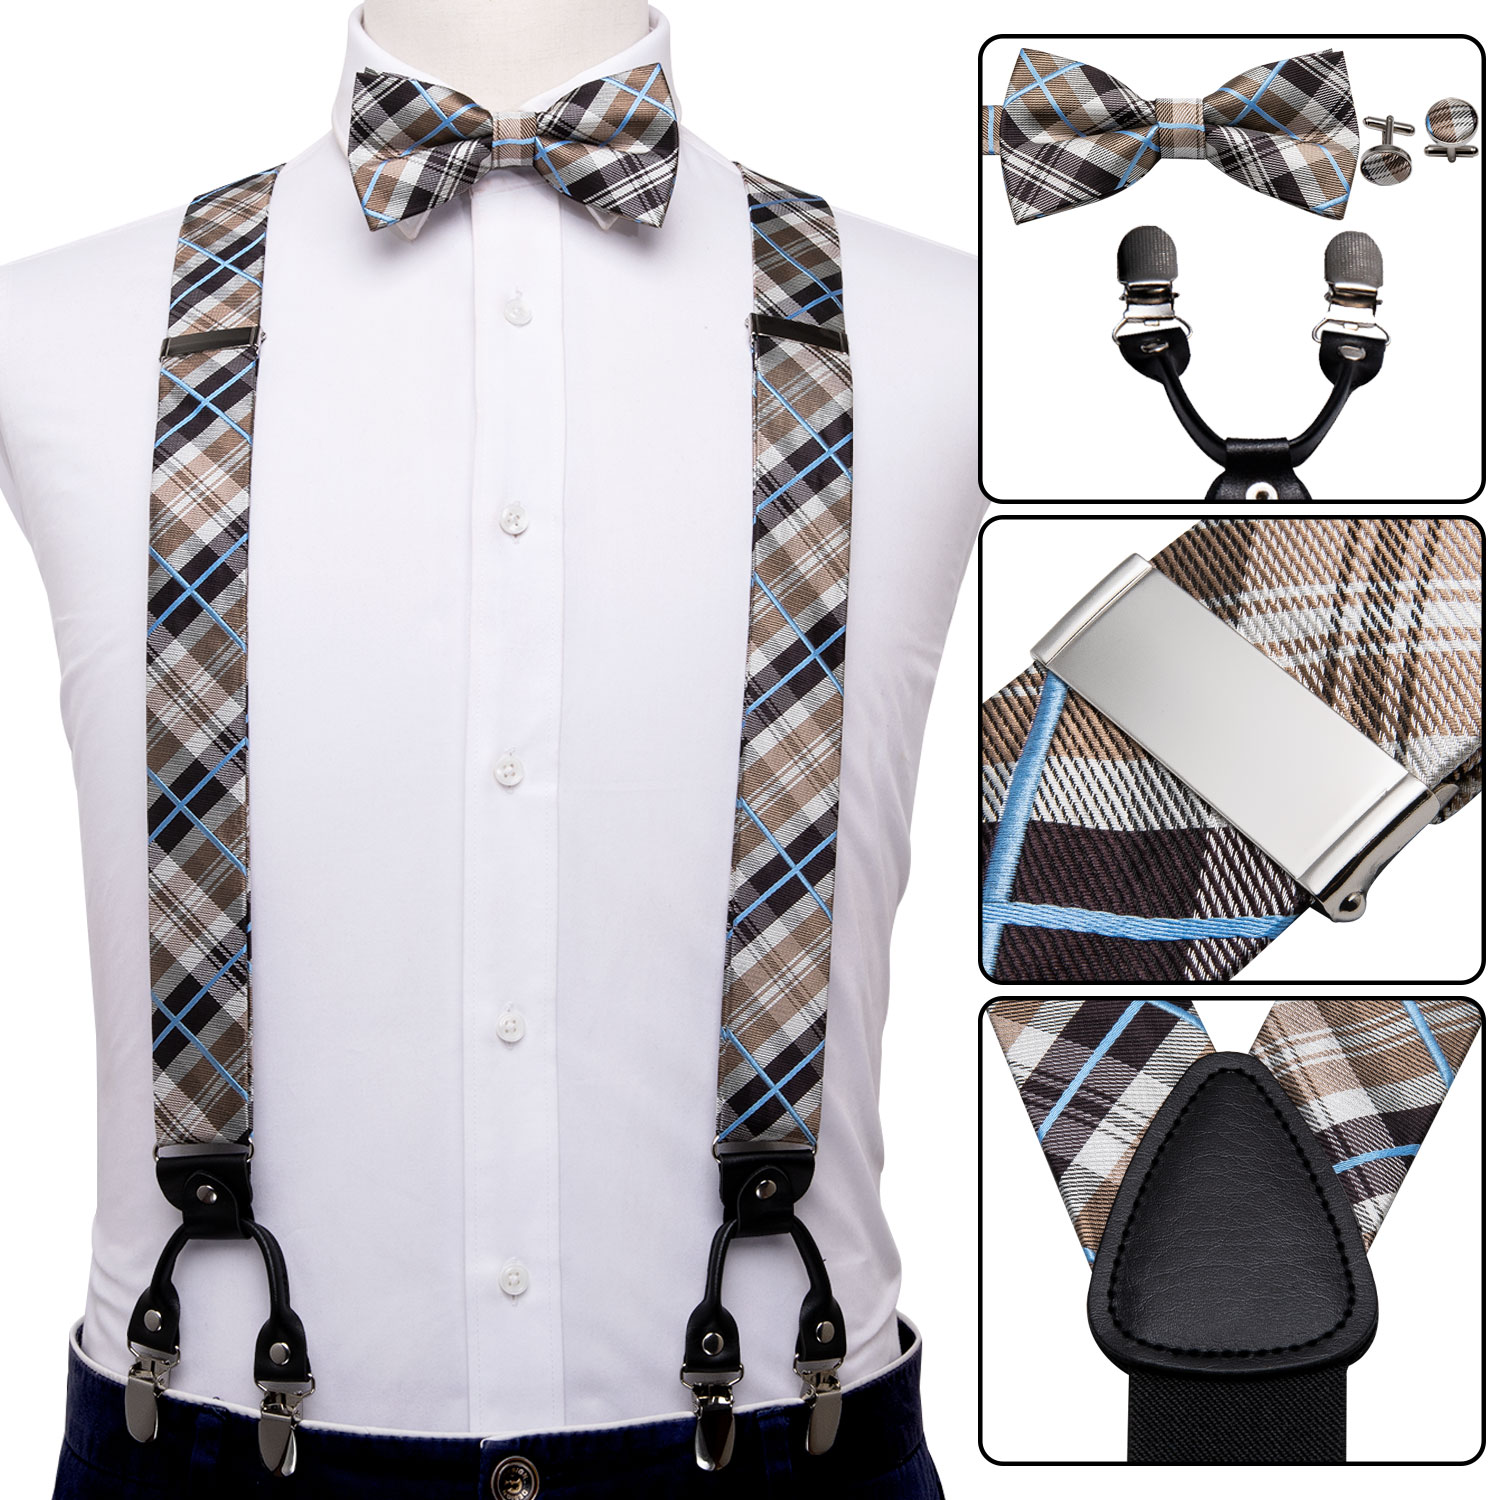 Men Suspender Set Silk Bowtie Plaid Tie Leather Back Belt Vintage Elastic Wedding Suspender Checked Bow Tie Christmas Barry.Wang